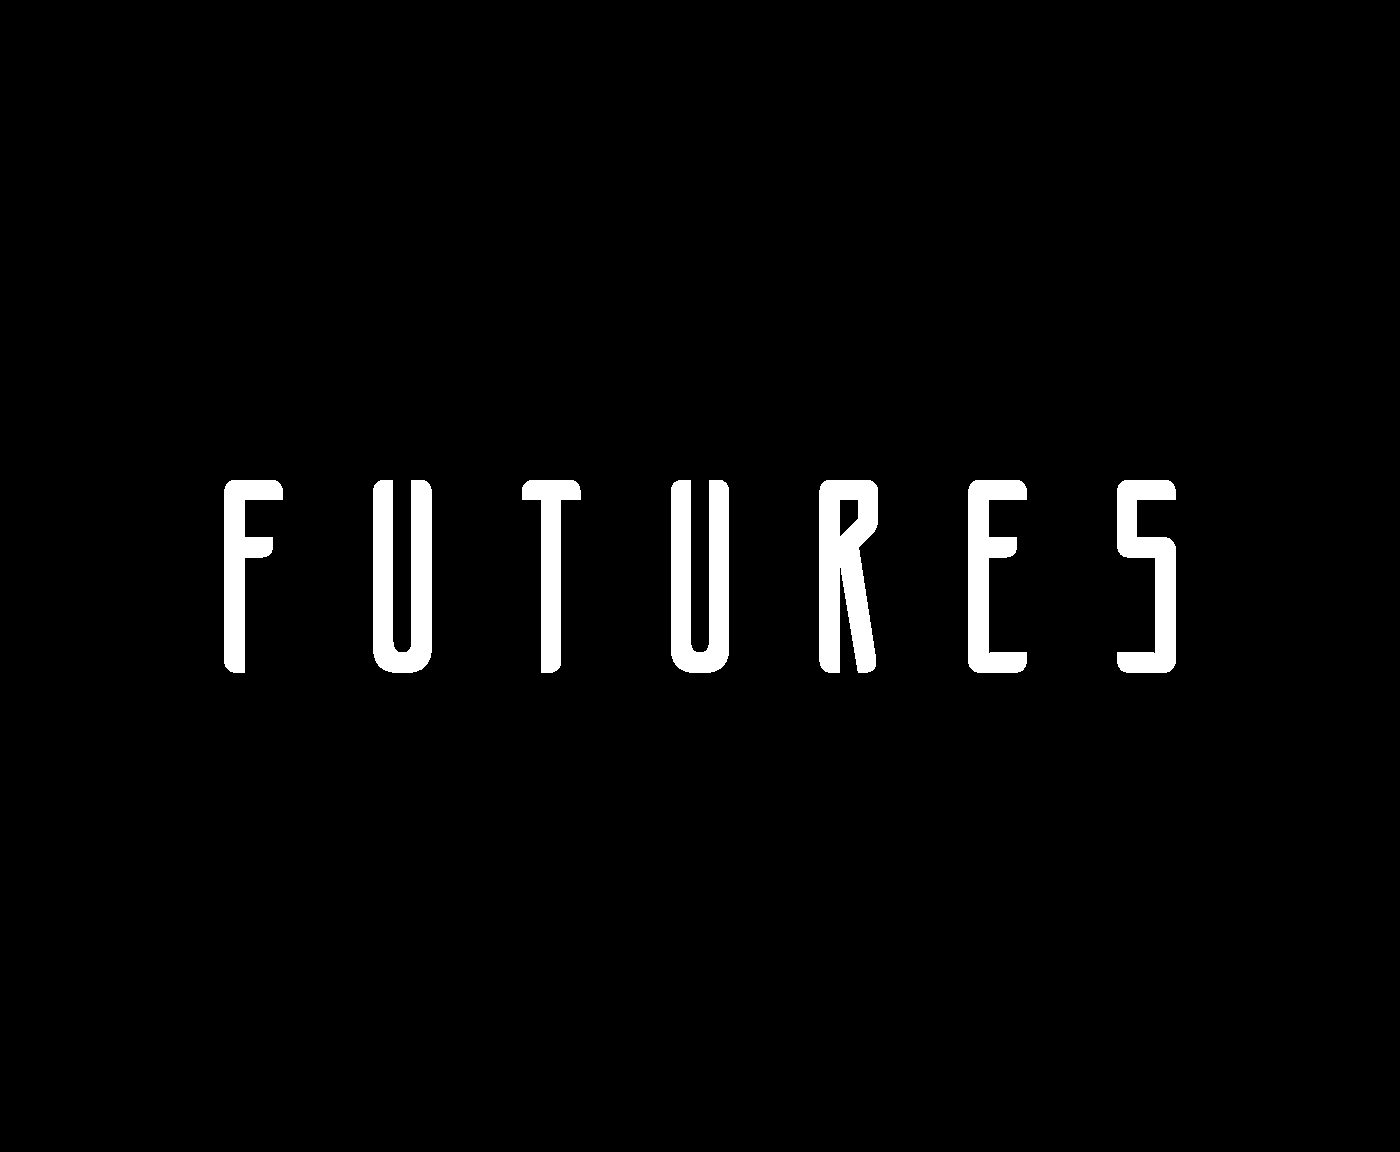 Futures-Regular font